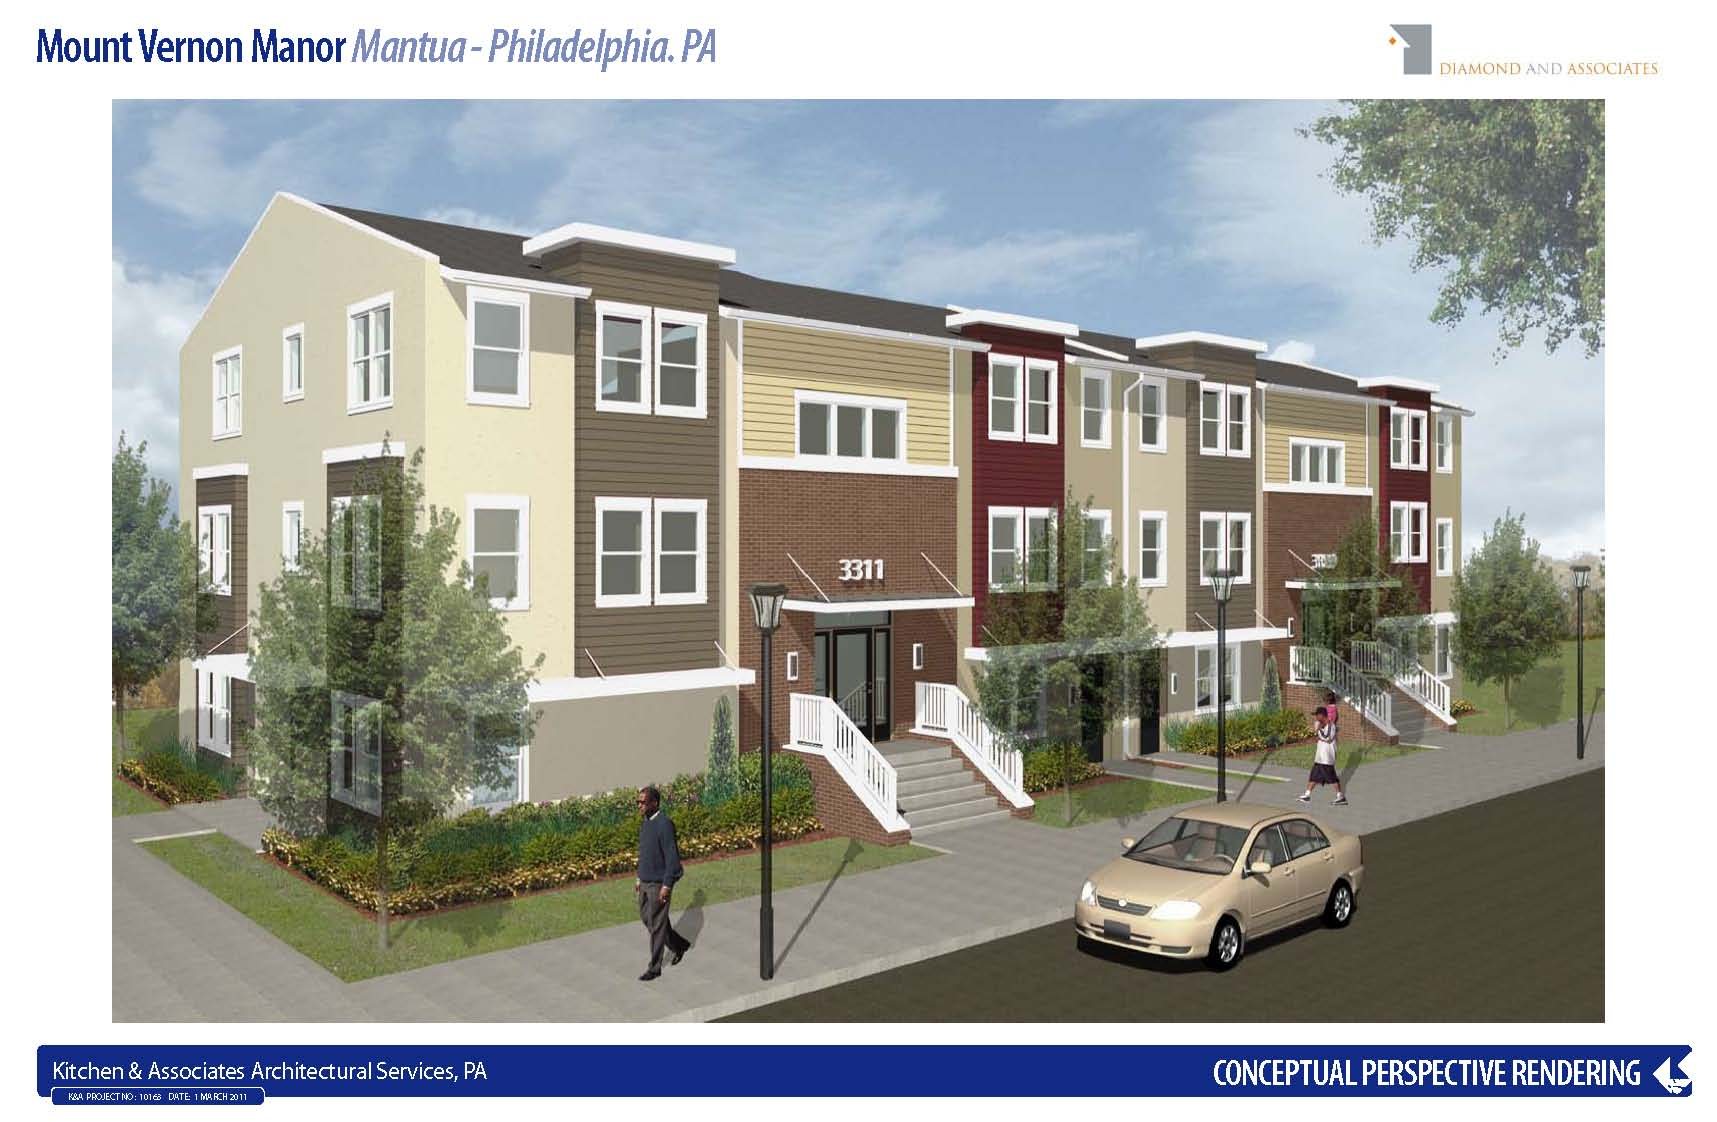 More redevelopment in mantua philadelphiaheights 2 unit building plan